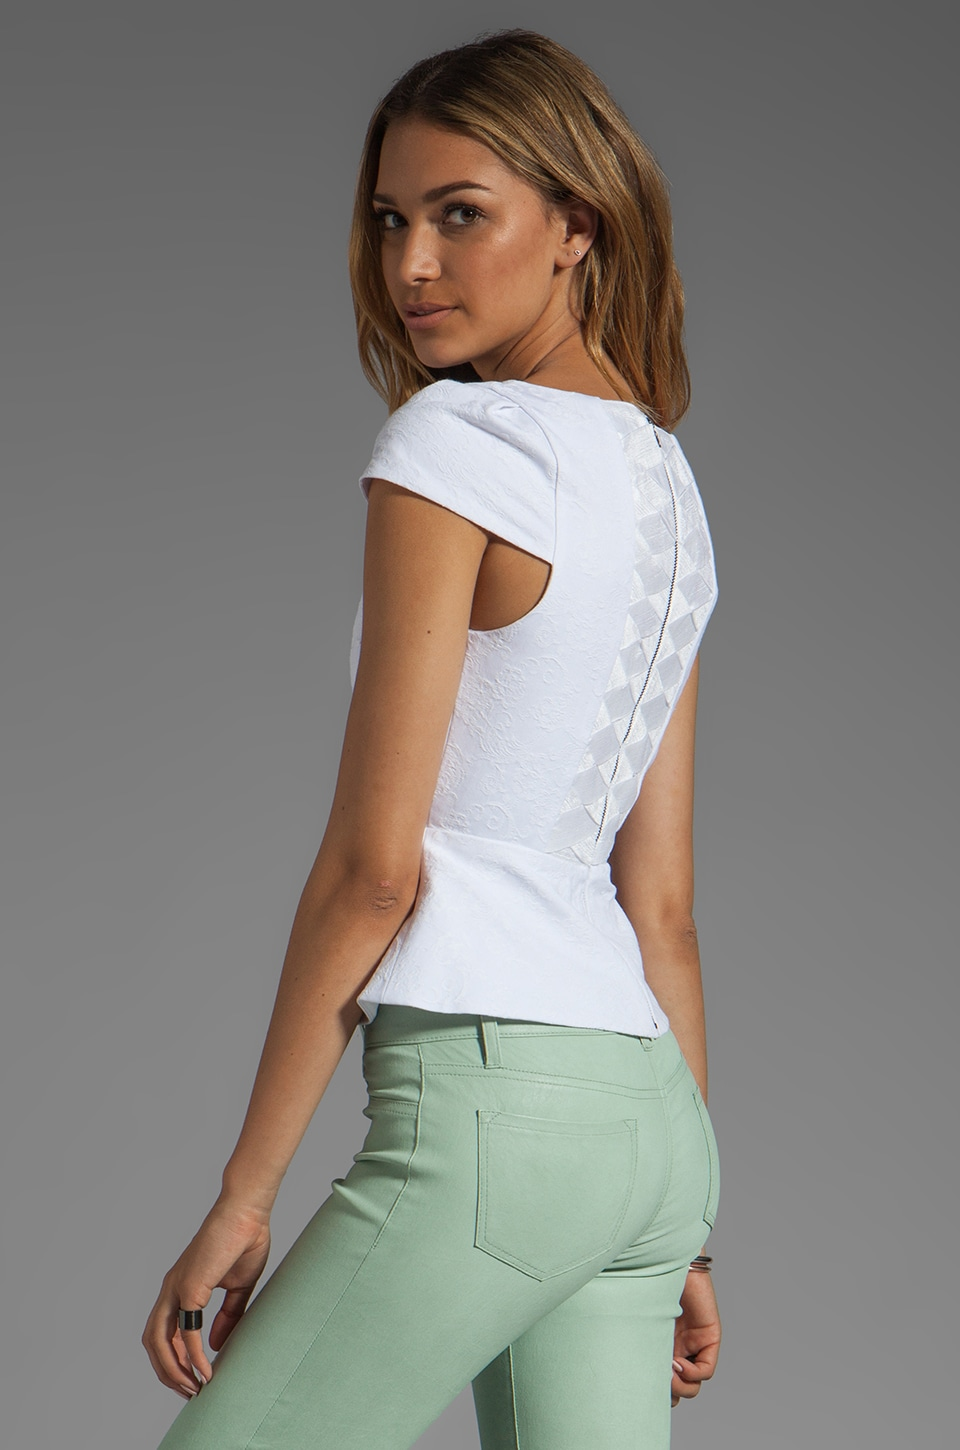 Alice + Olivia Roz Short Sleeve Boatneck Peplum Top in White